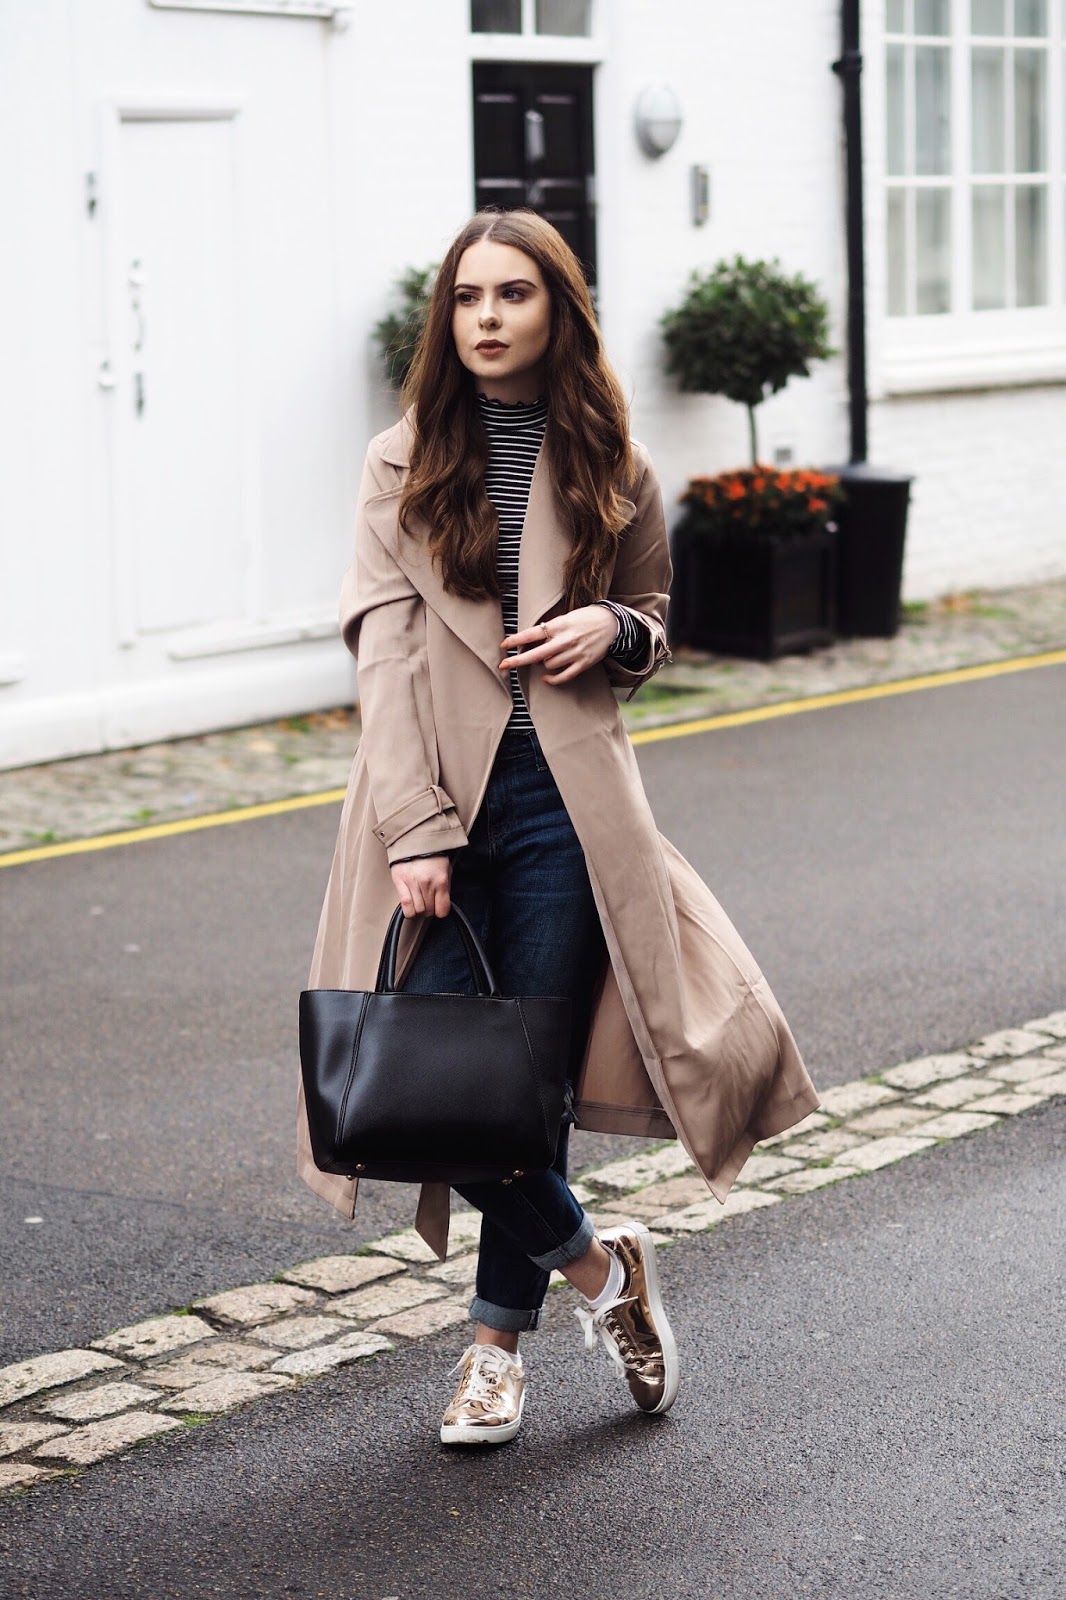 The Pretty Little Thing autumn winter coat edit